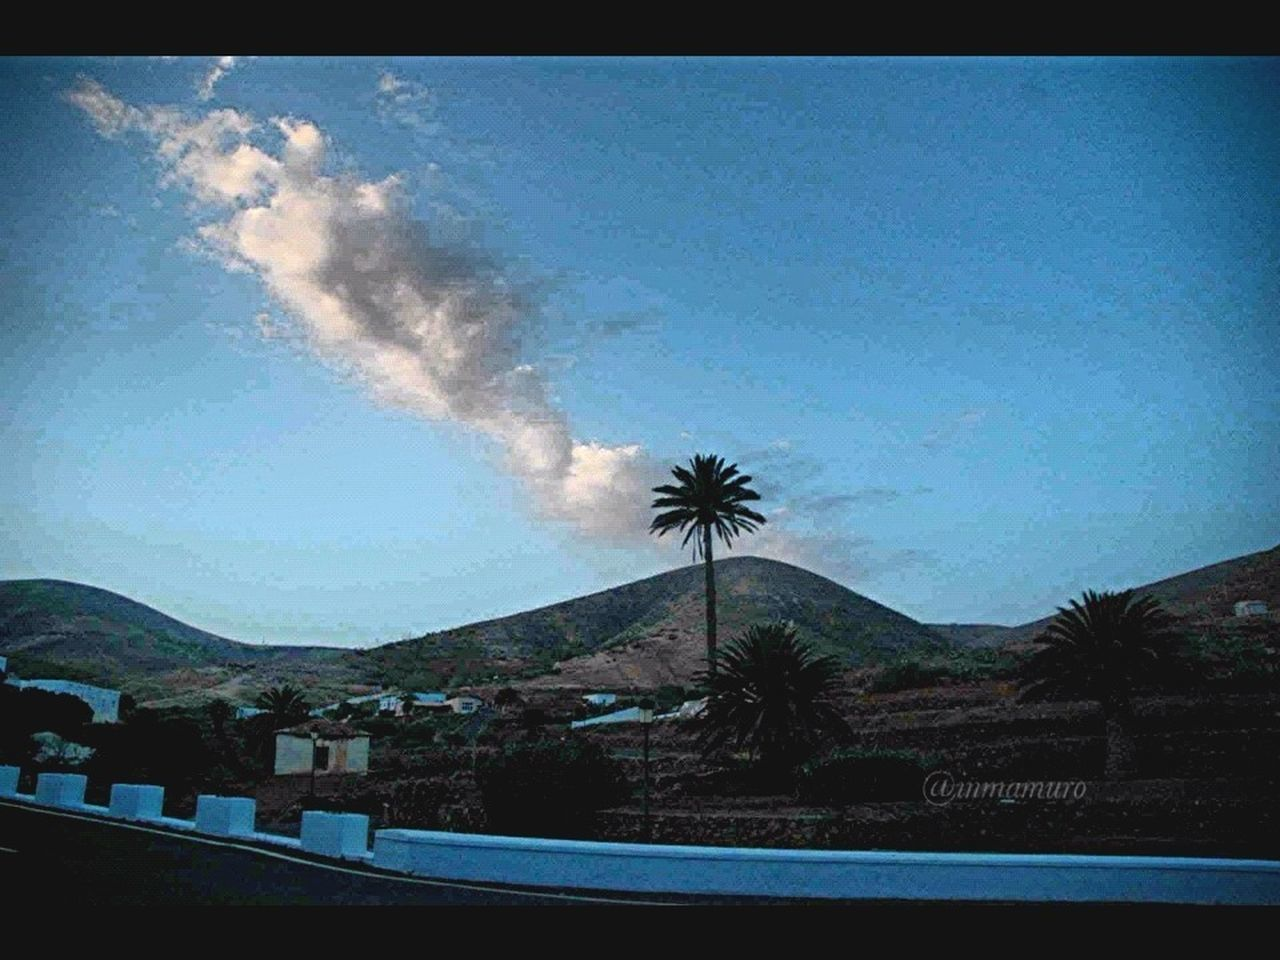 tree, sky, palm tree, mountain, no people, outdoors, nature, day, blue, landscape, built structure, beauty in nature, architecture, building exterior, scenics, vapor trail